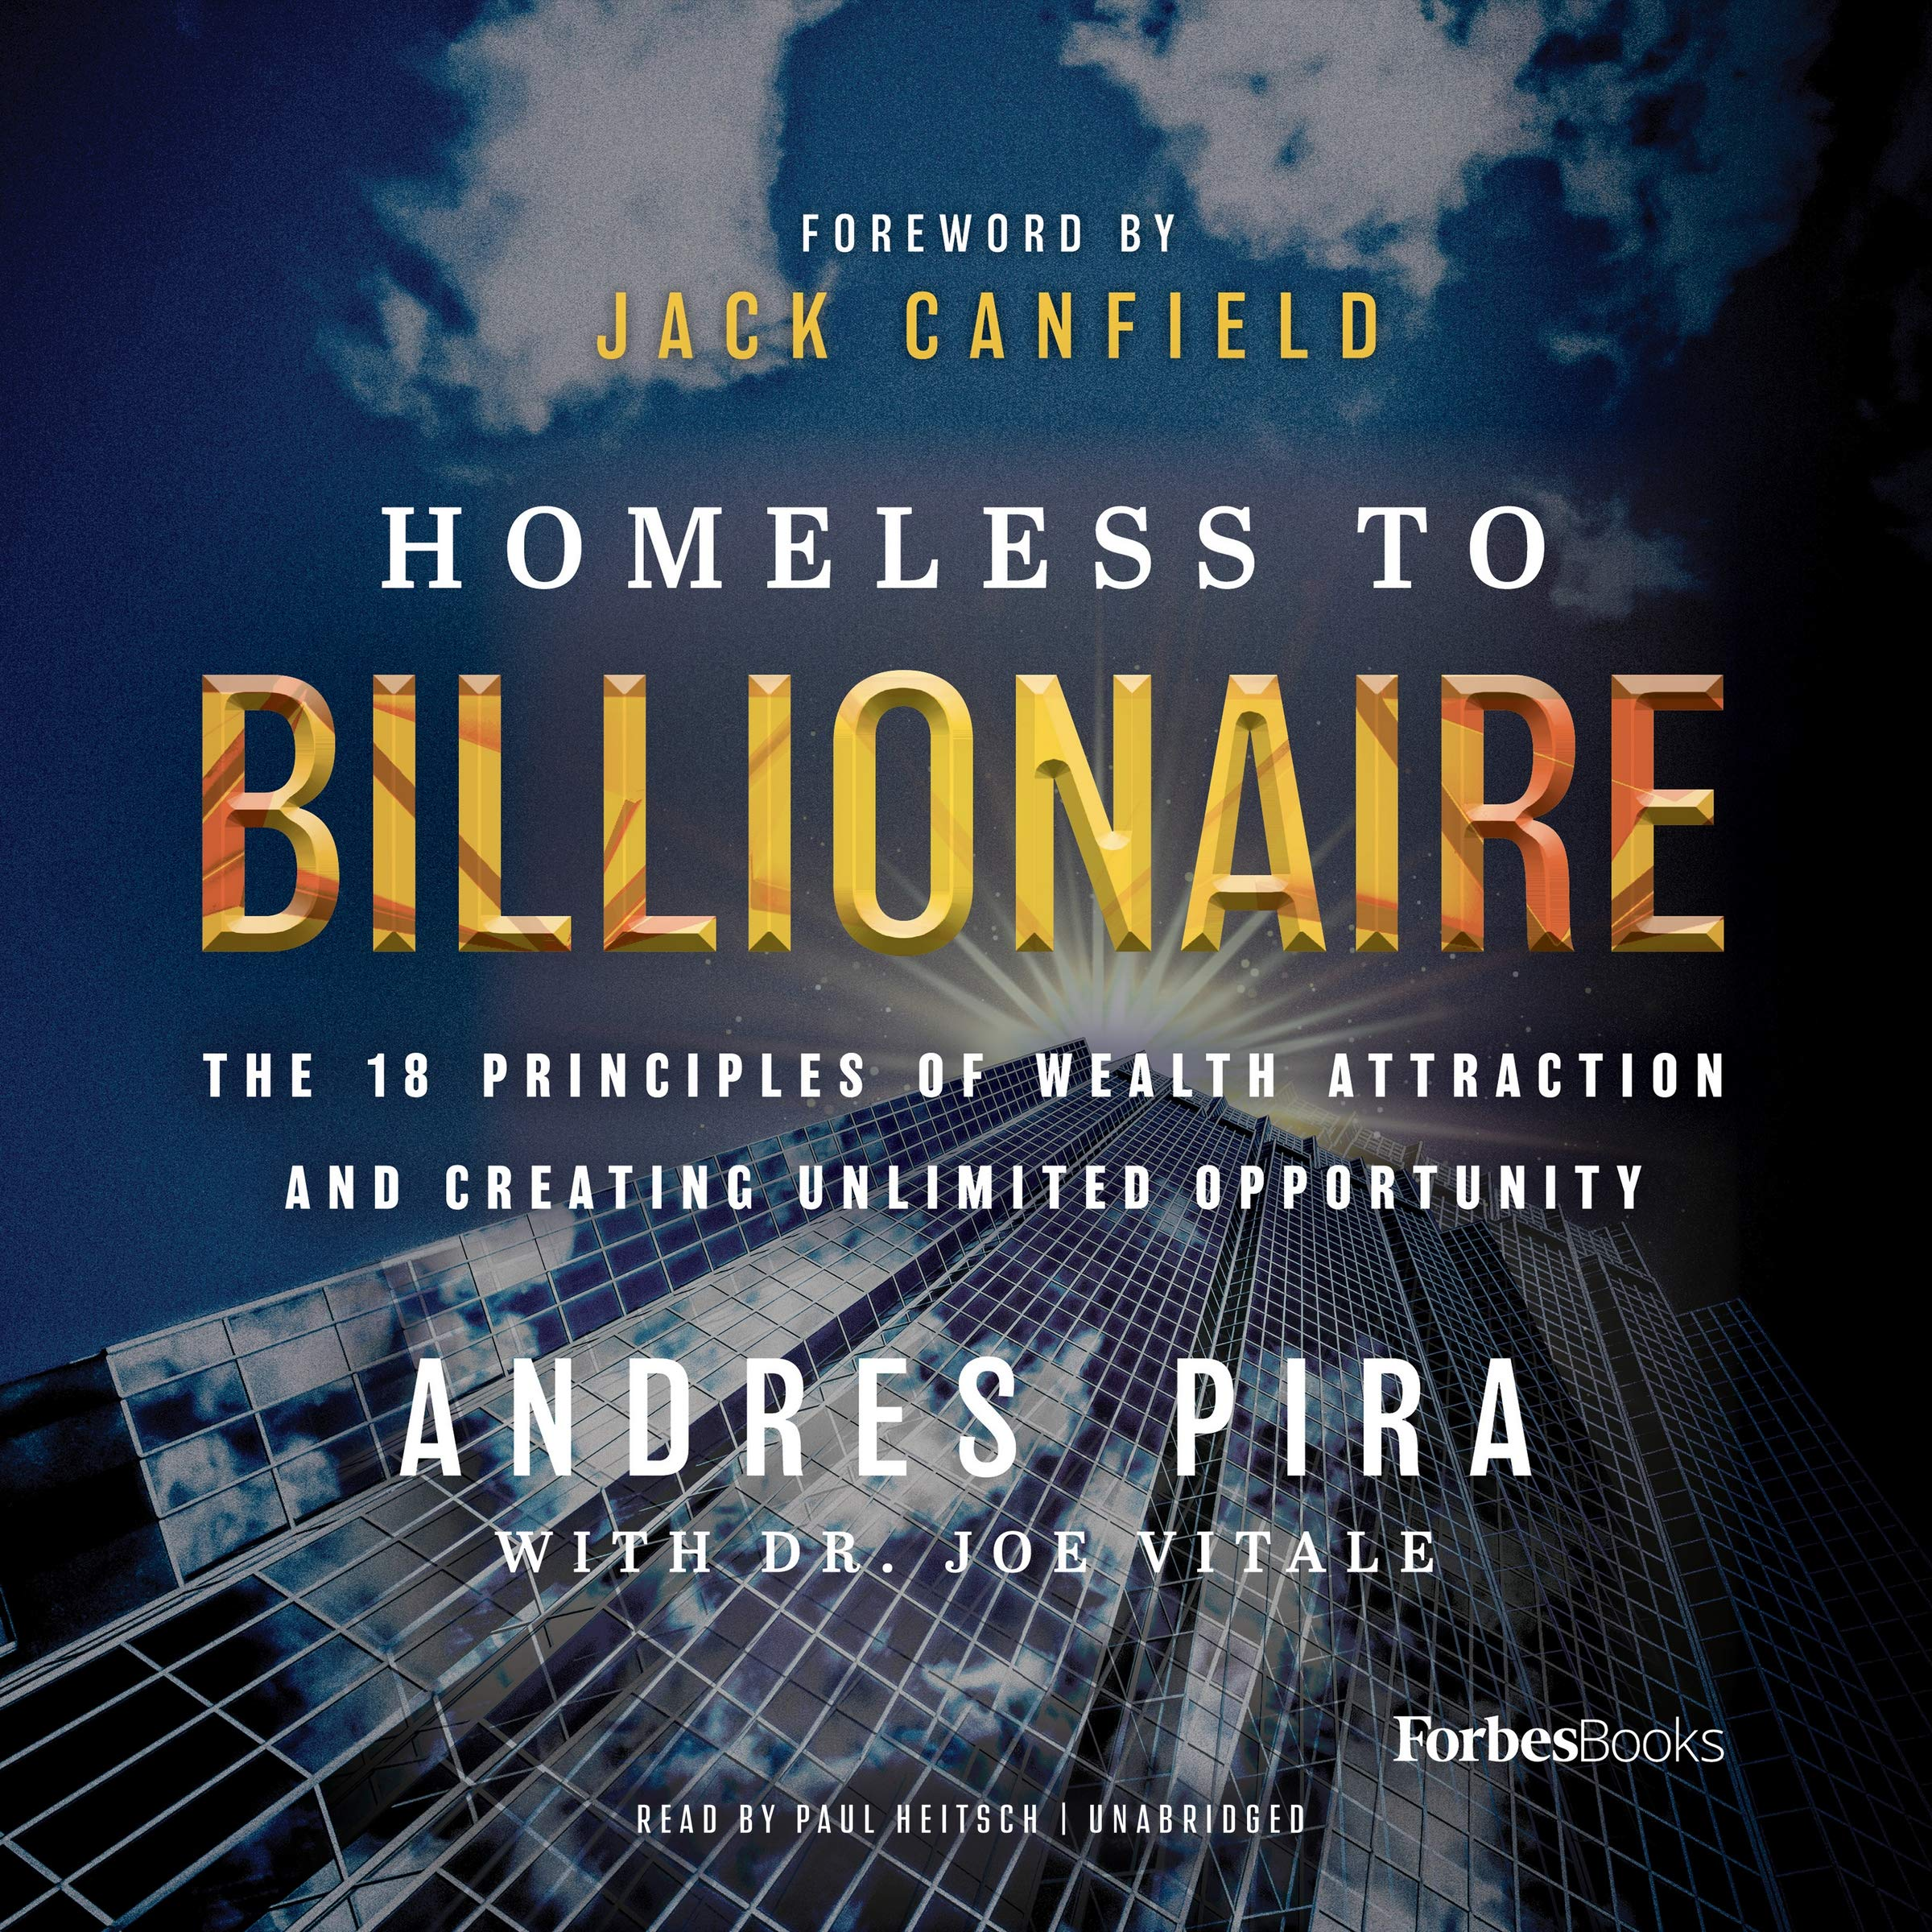 Book Review: Homeless to Billionaire: The 18 Principles of Wealth Attraction